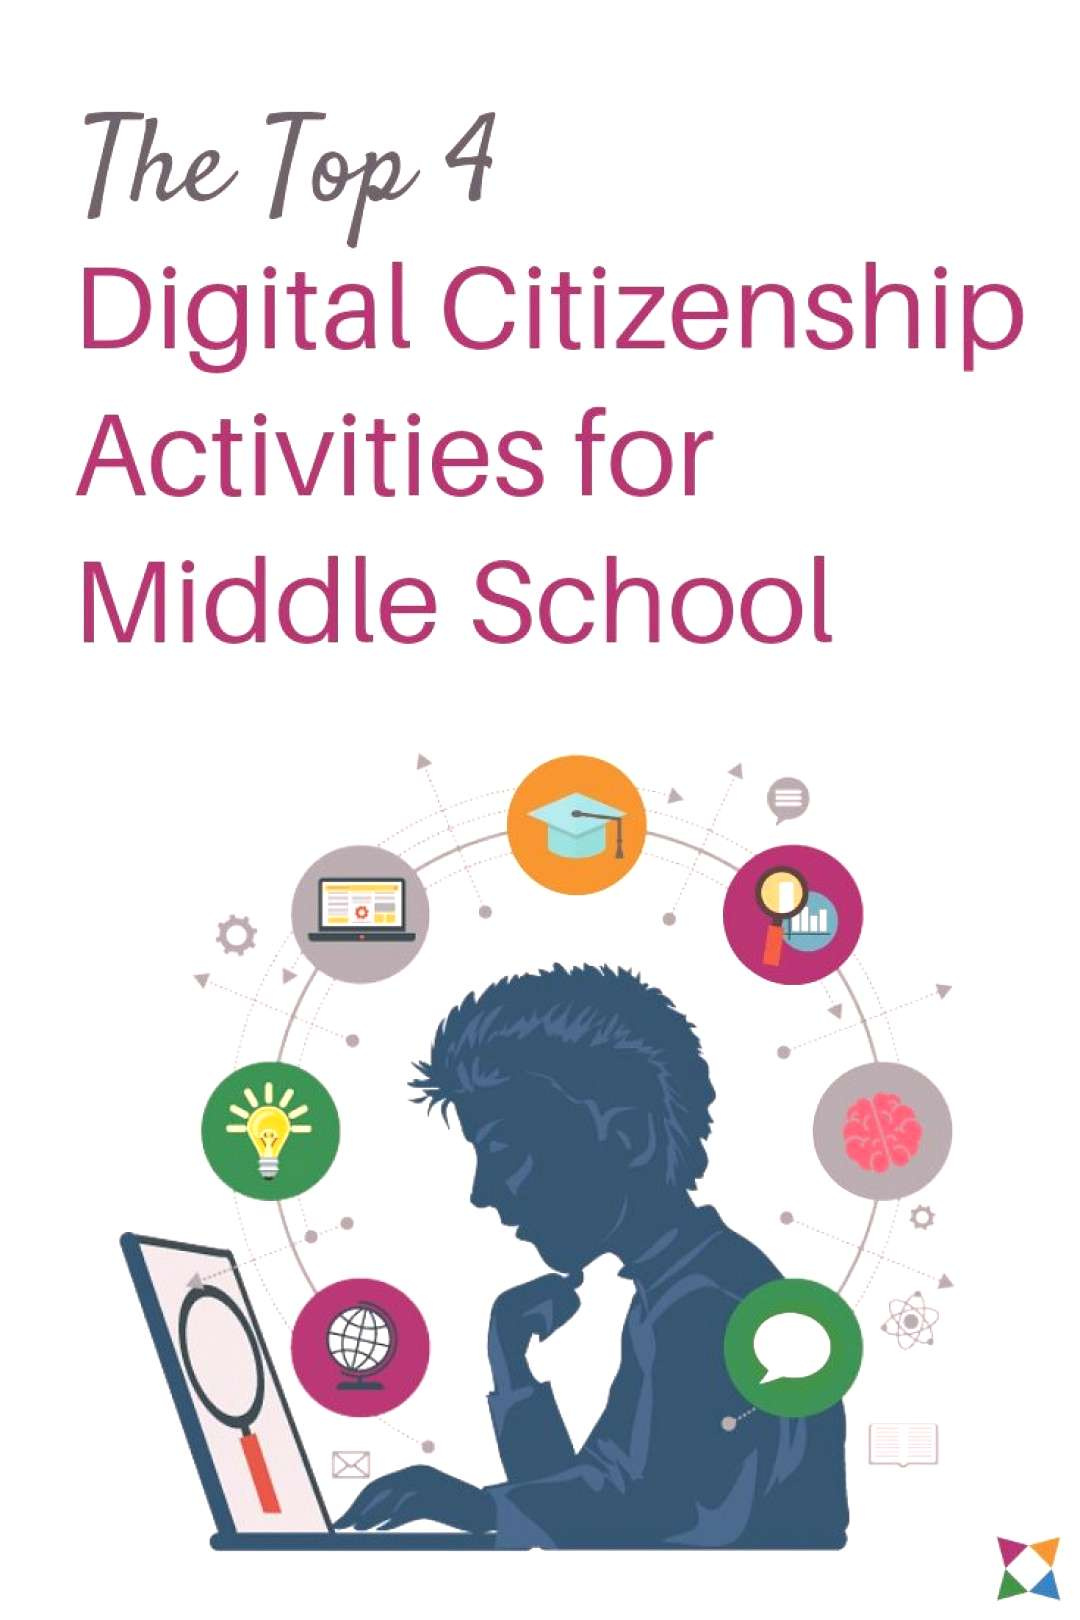 Top 4 Digital Citizenship Activities for Middle School Teaching digital citizenship is crucial in m